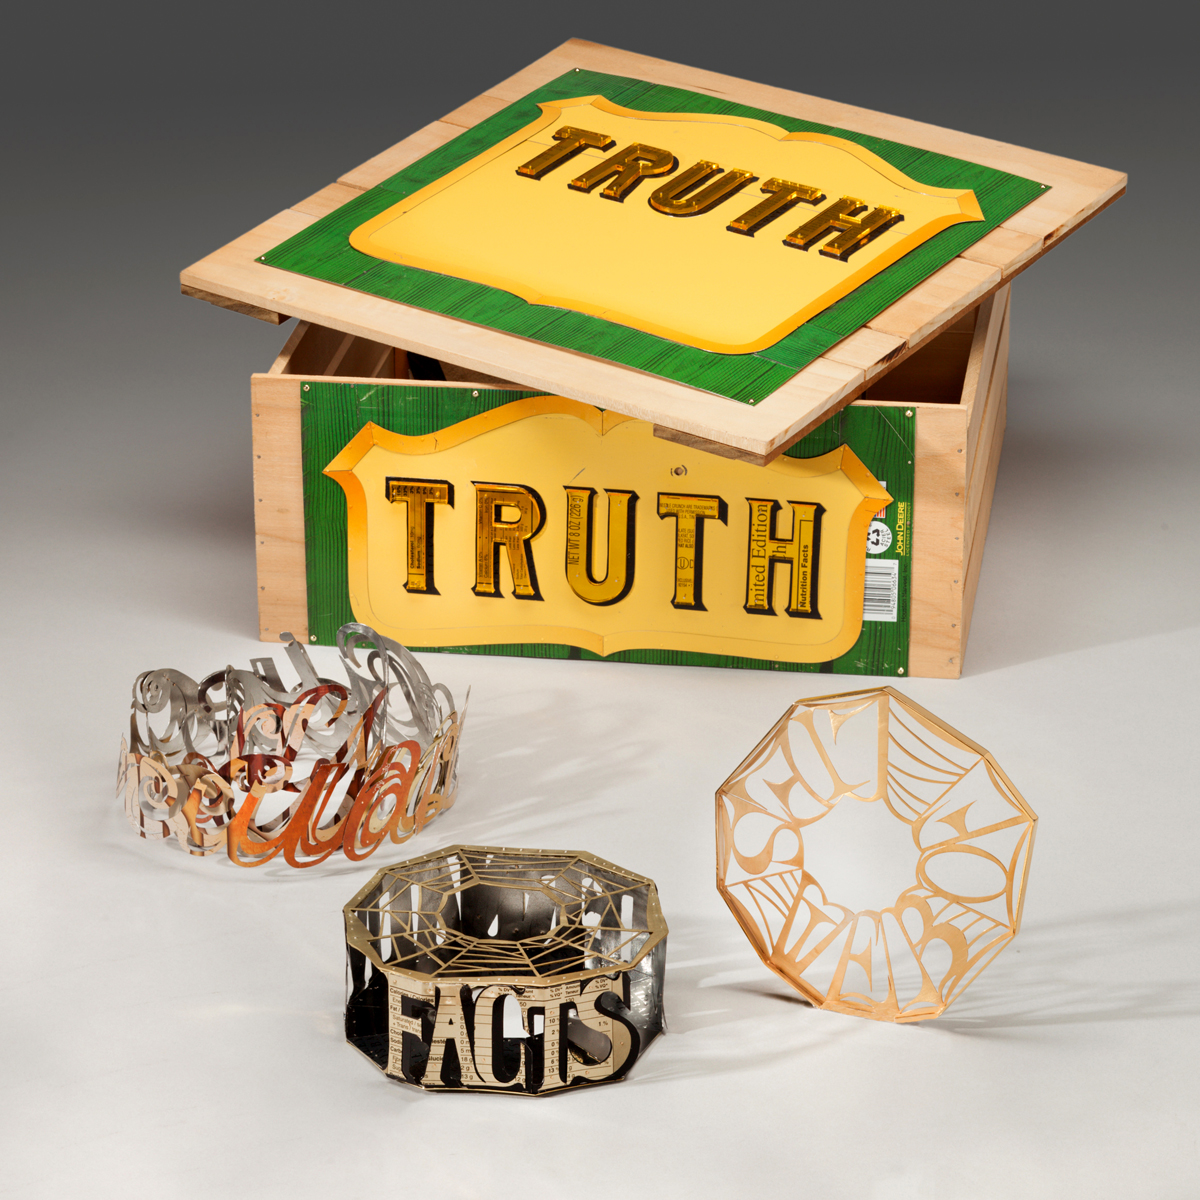 "Fabricating TRUTH  three bracelets representing Alternate Facts, Circular Logic and Web of Lies    Copyright 2017      Box Dimensions: 5.5"" ht x 14' w  x  14.5 d"